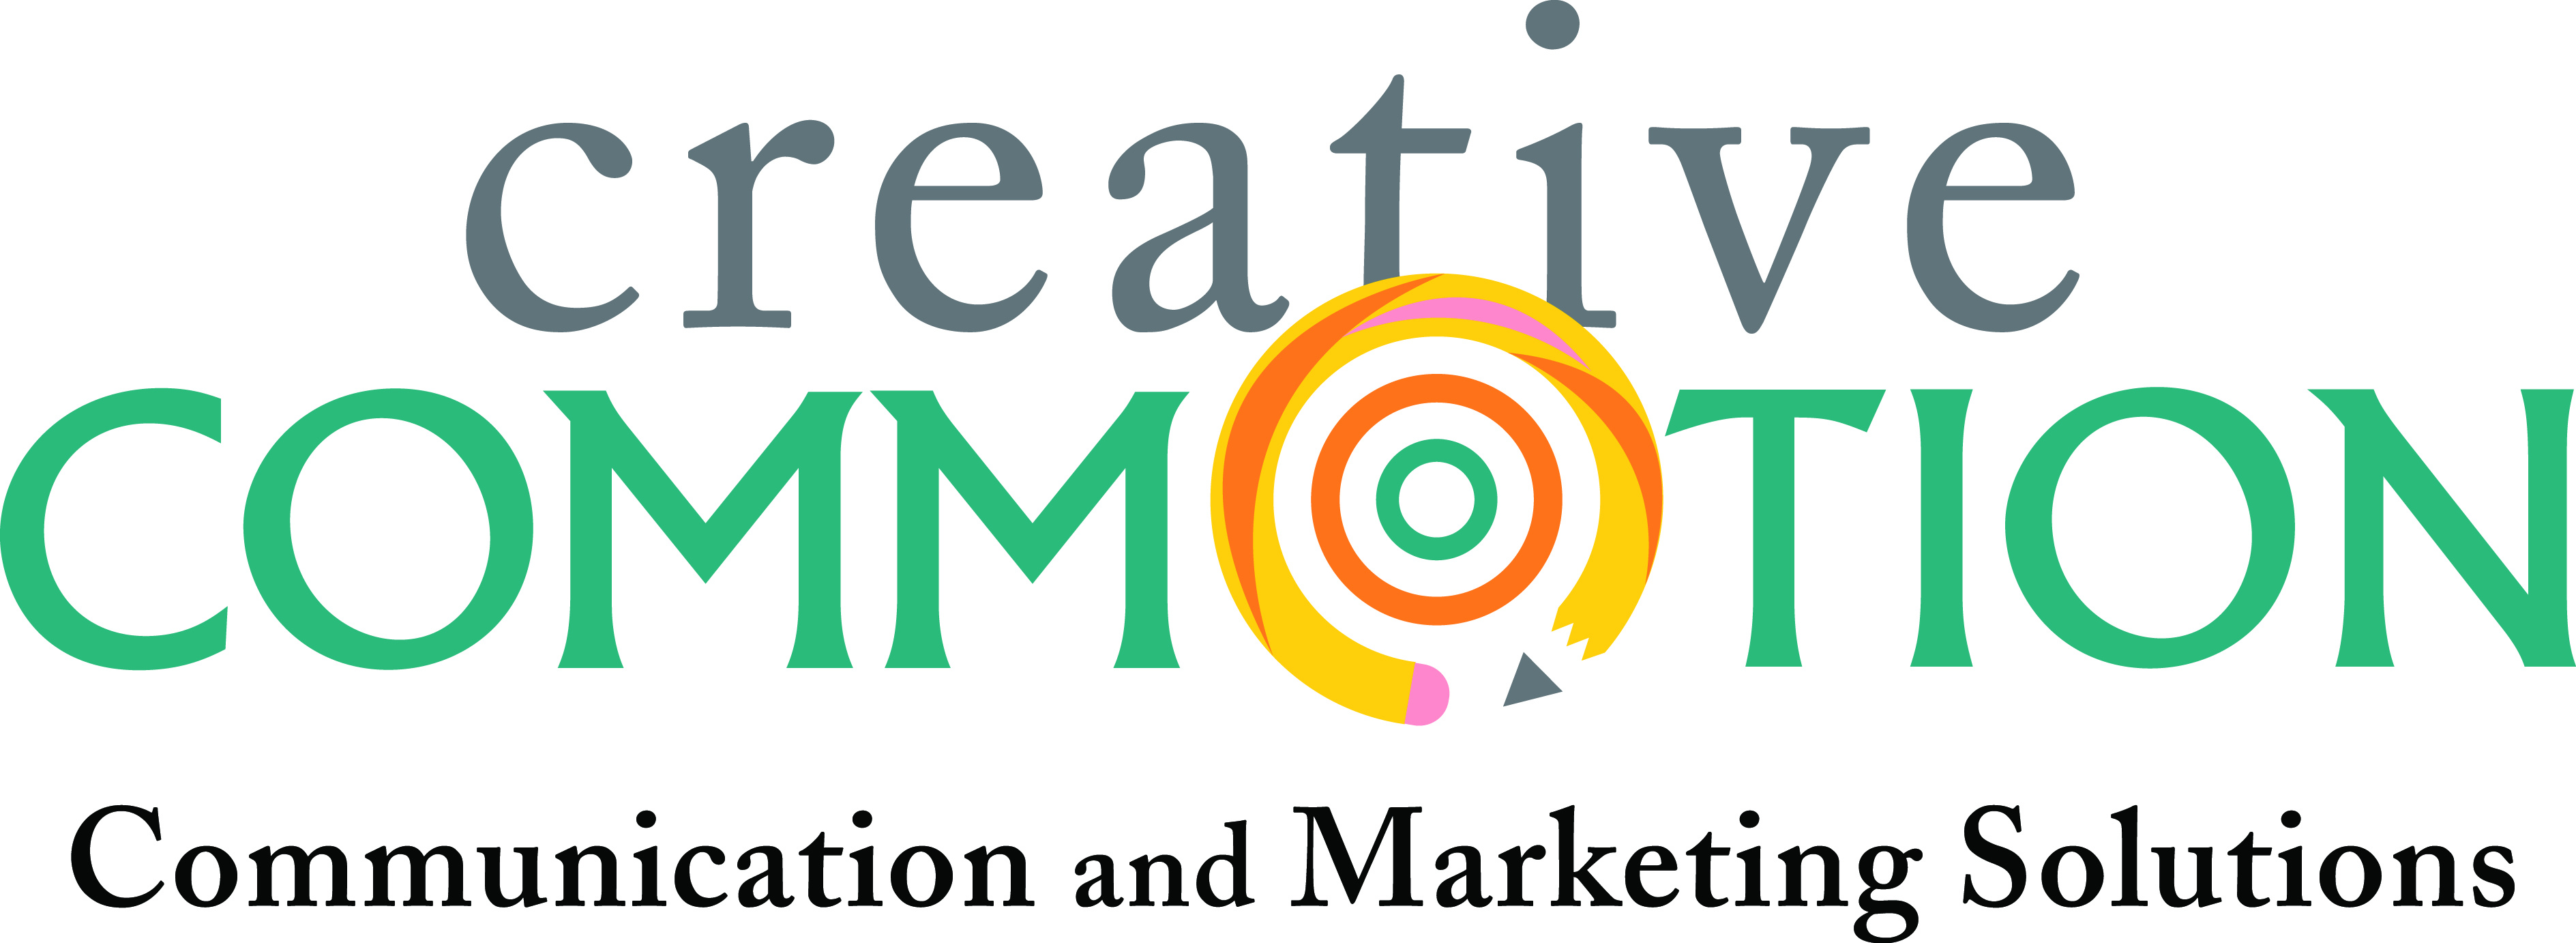 Creative Commotion brand